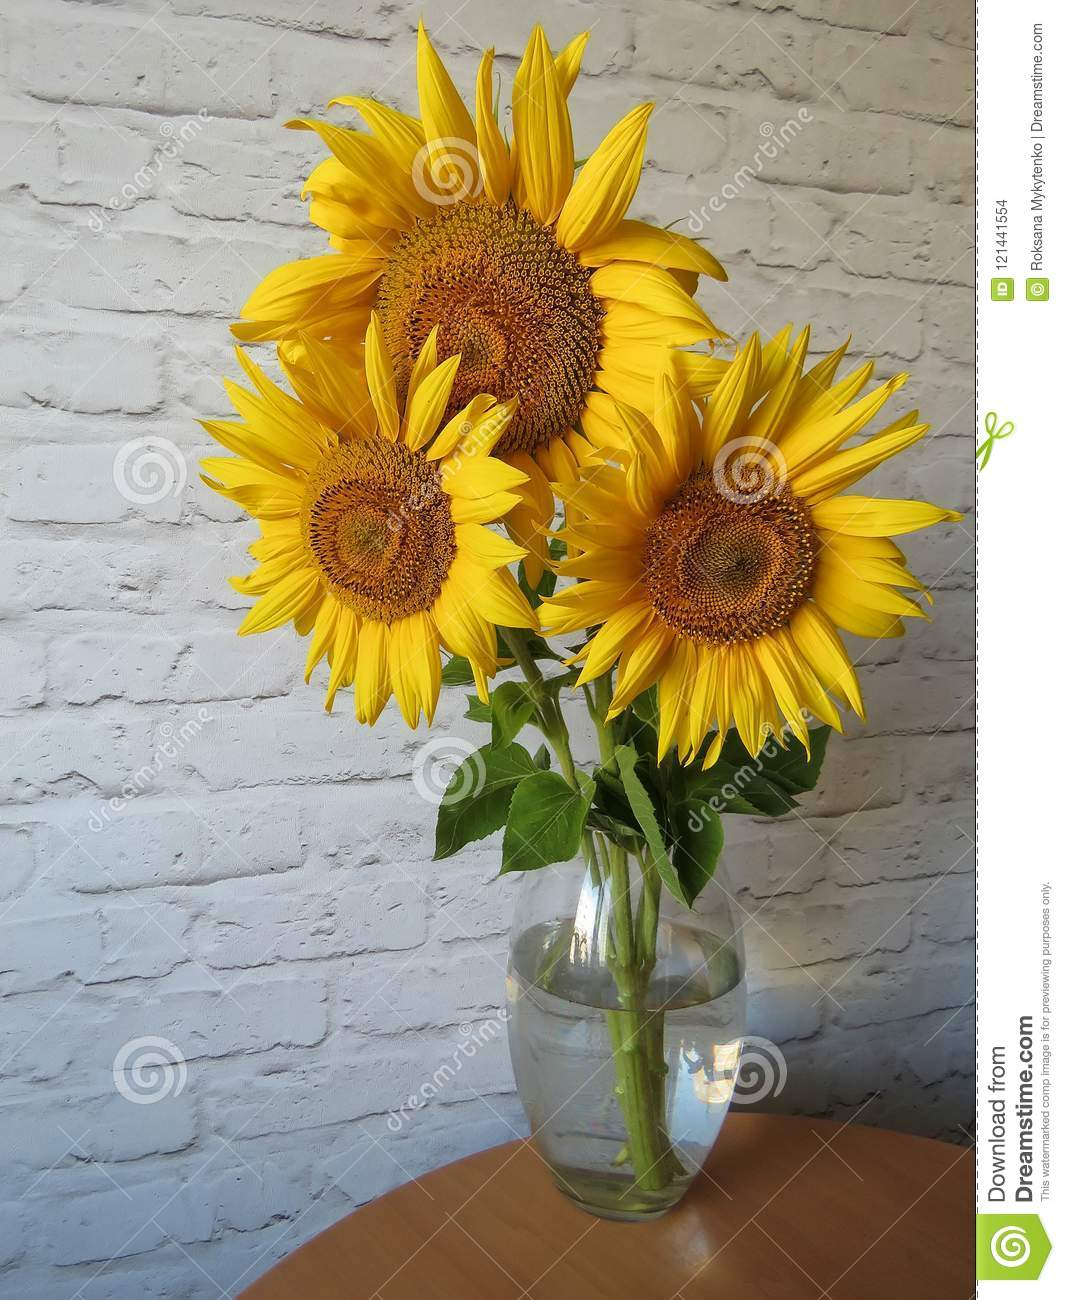 Kitchen Bouquet Bouquet Of Sunflowers In A Vase In The Kitchen Stock Photo Image